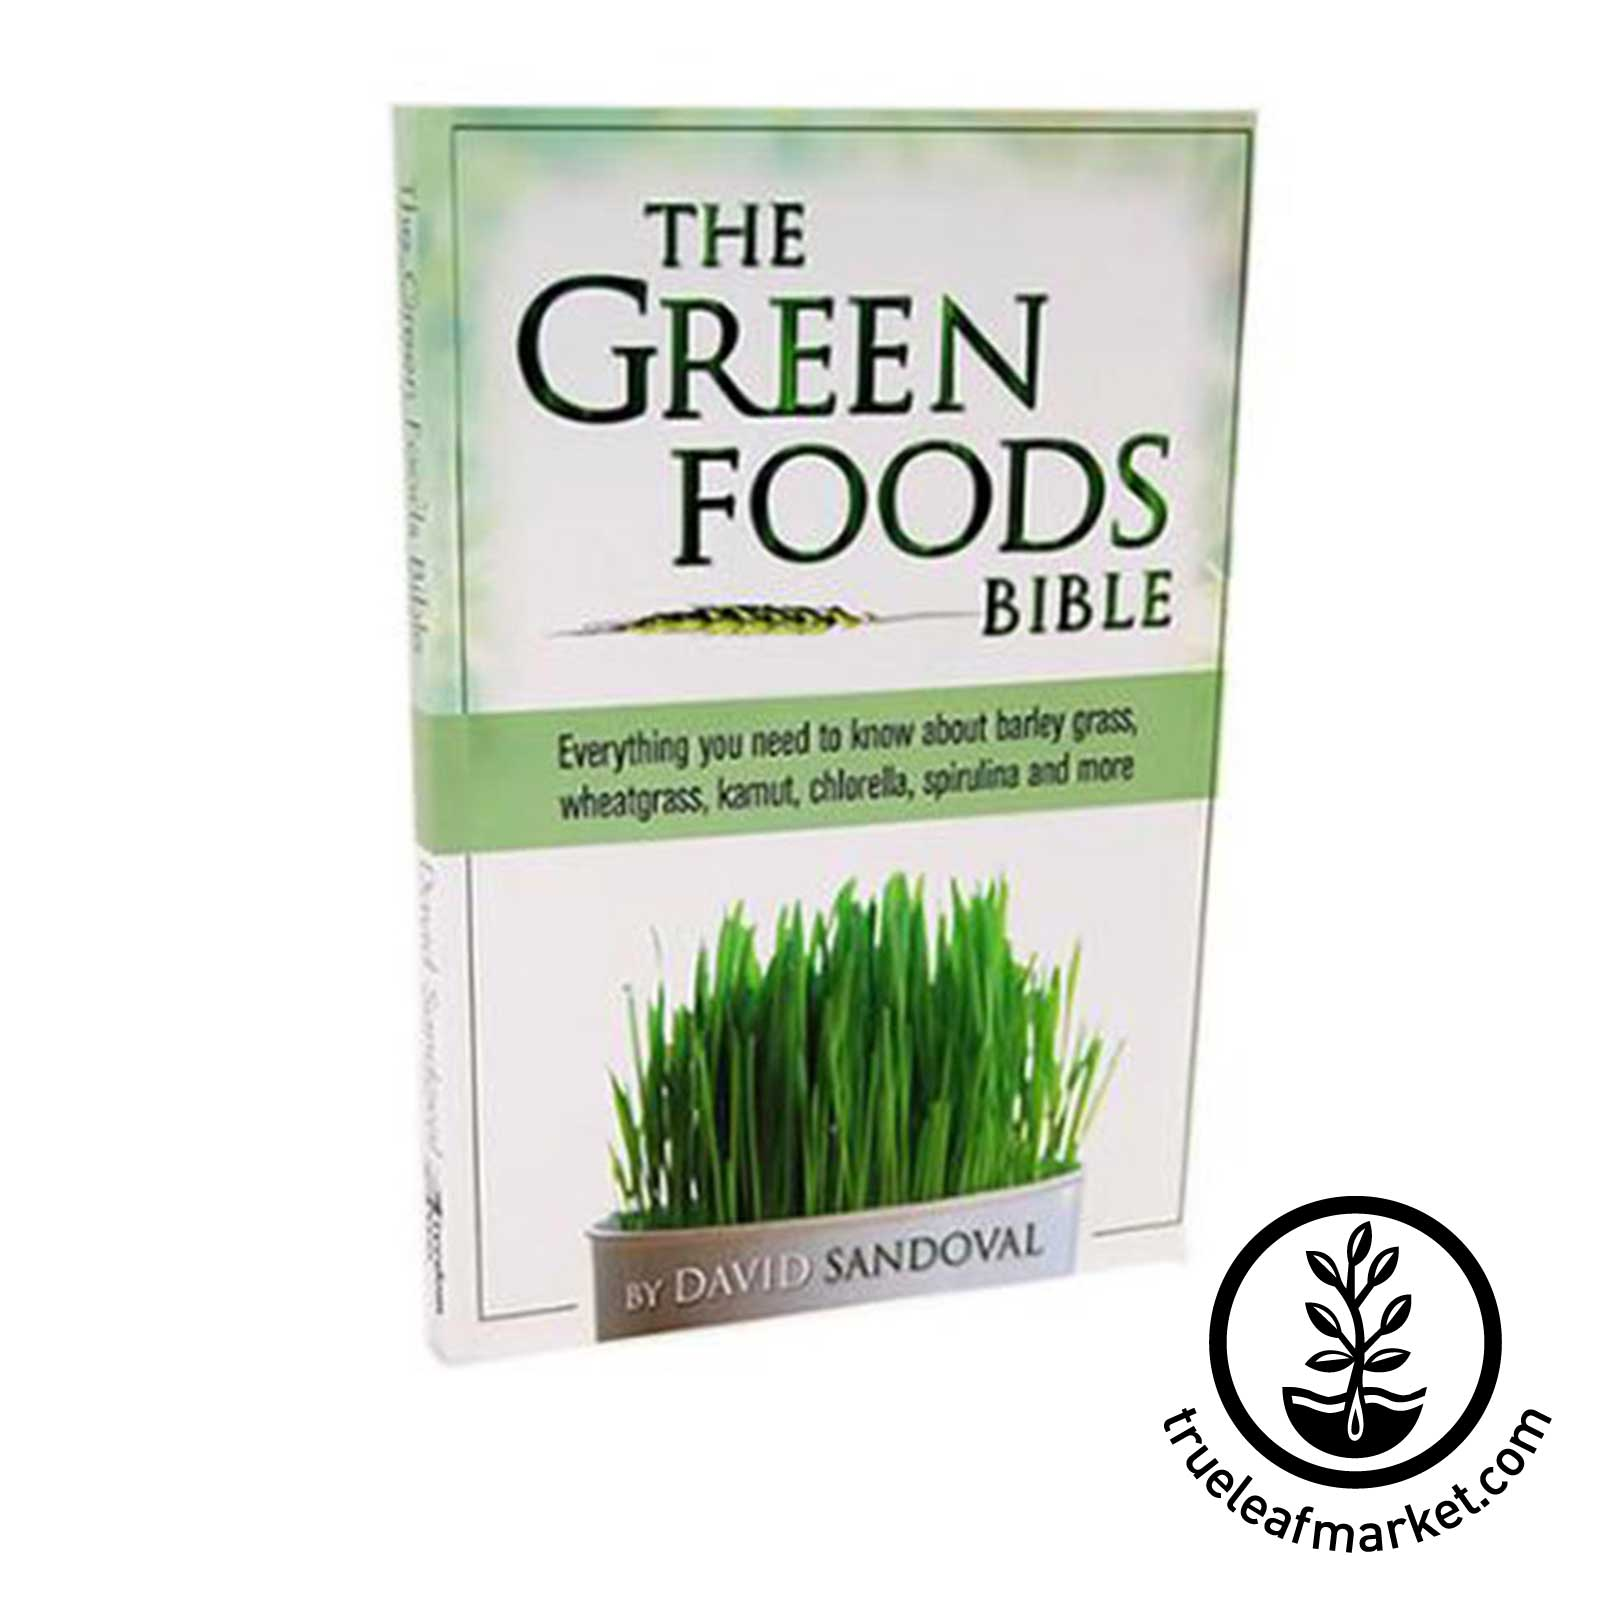 Green Foods Bible Book by David Sandoval